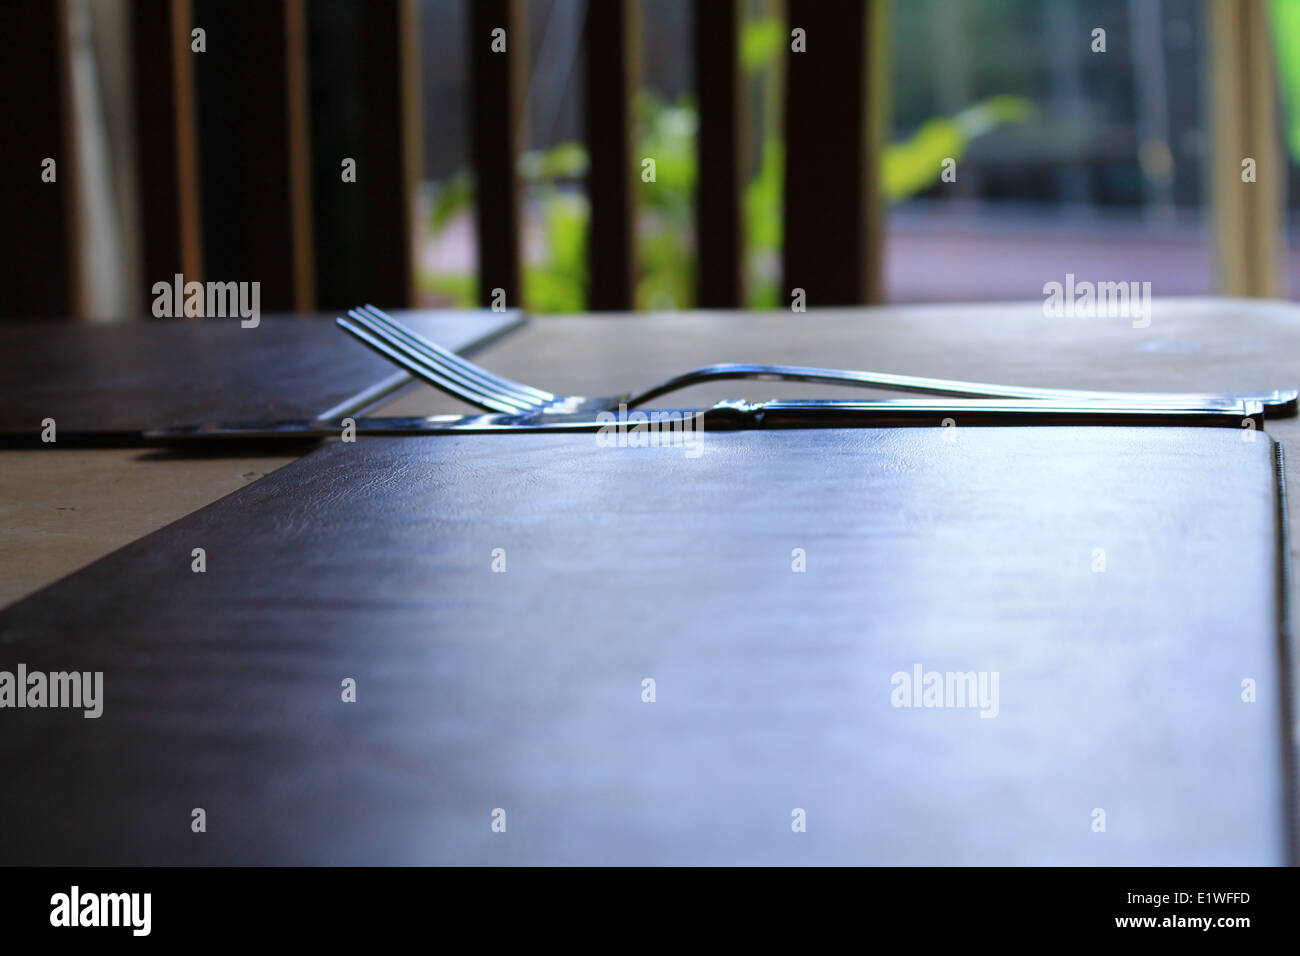 A place setting in a public house dining room table - Stock Image